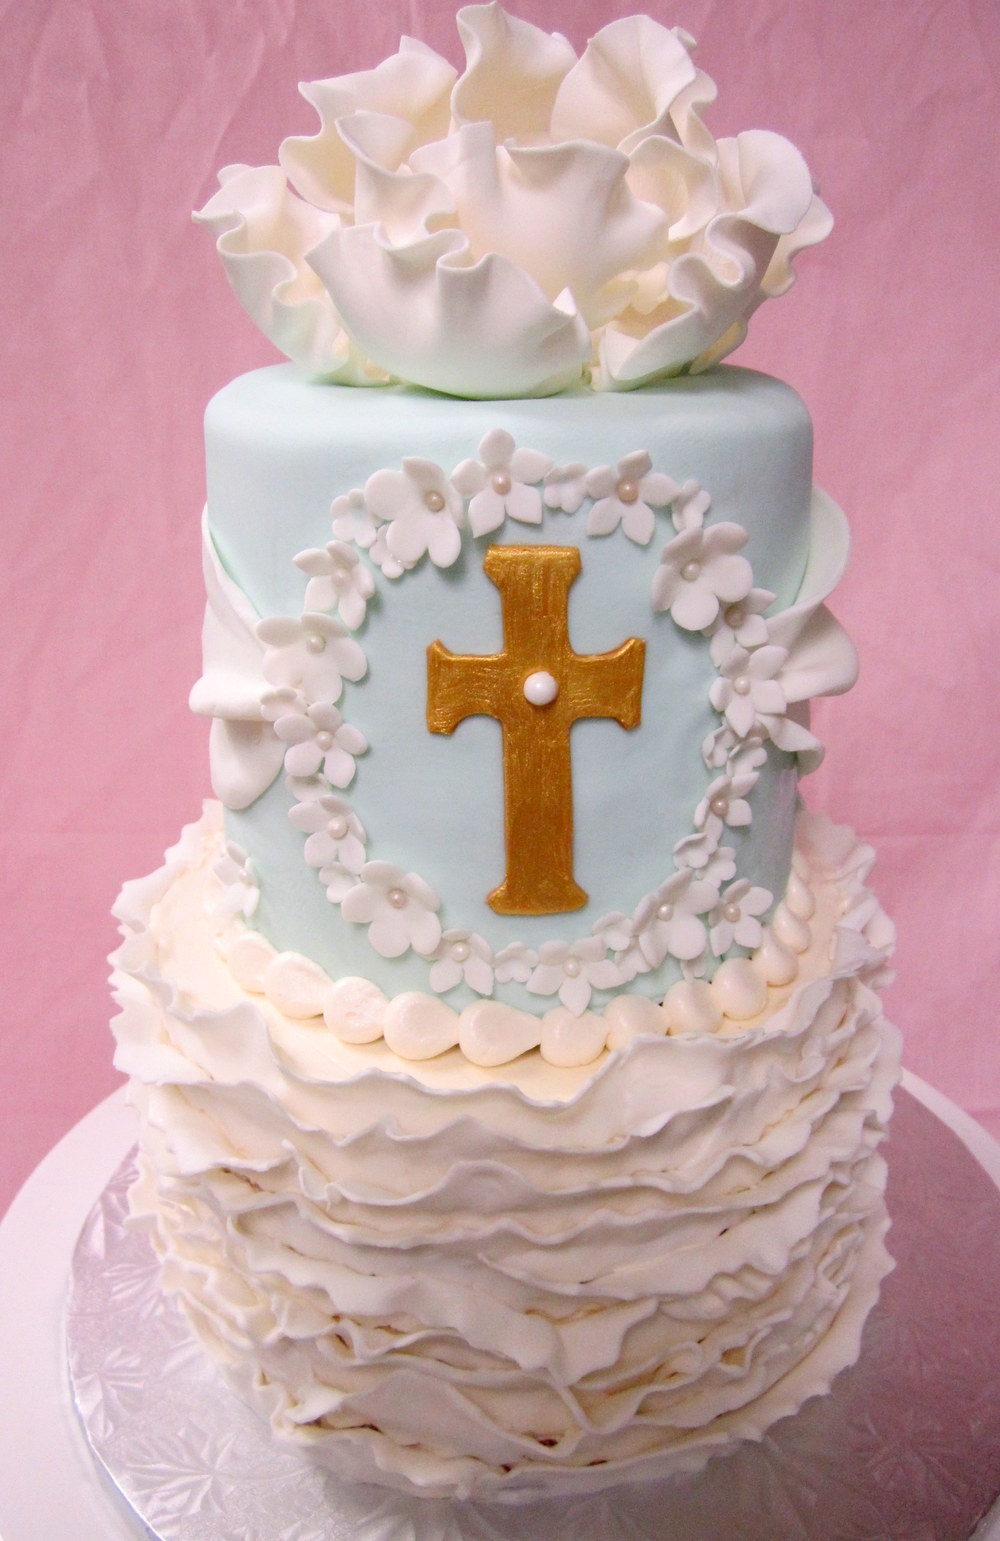 communion white fondant ruffles gold cross white flowers.JPG